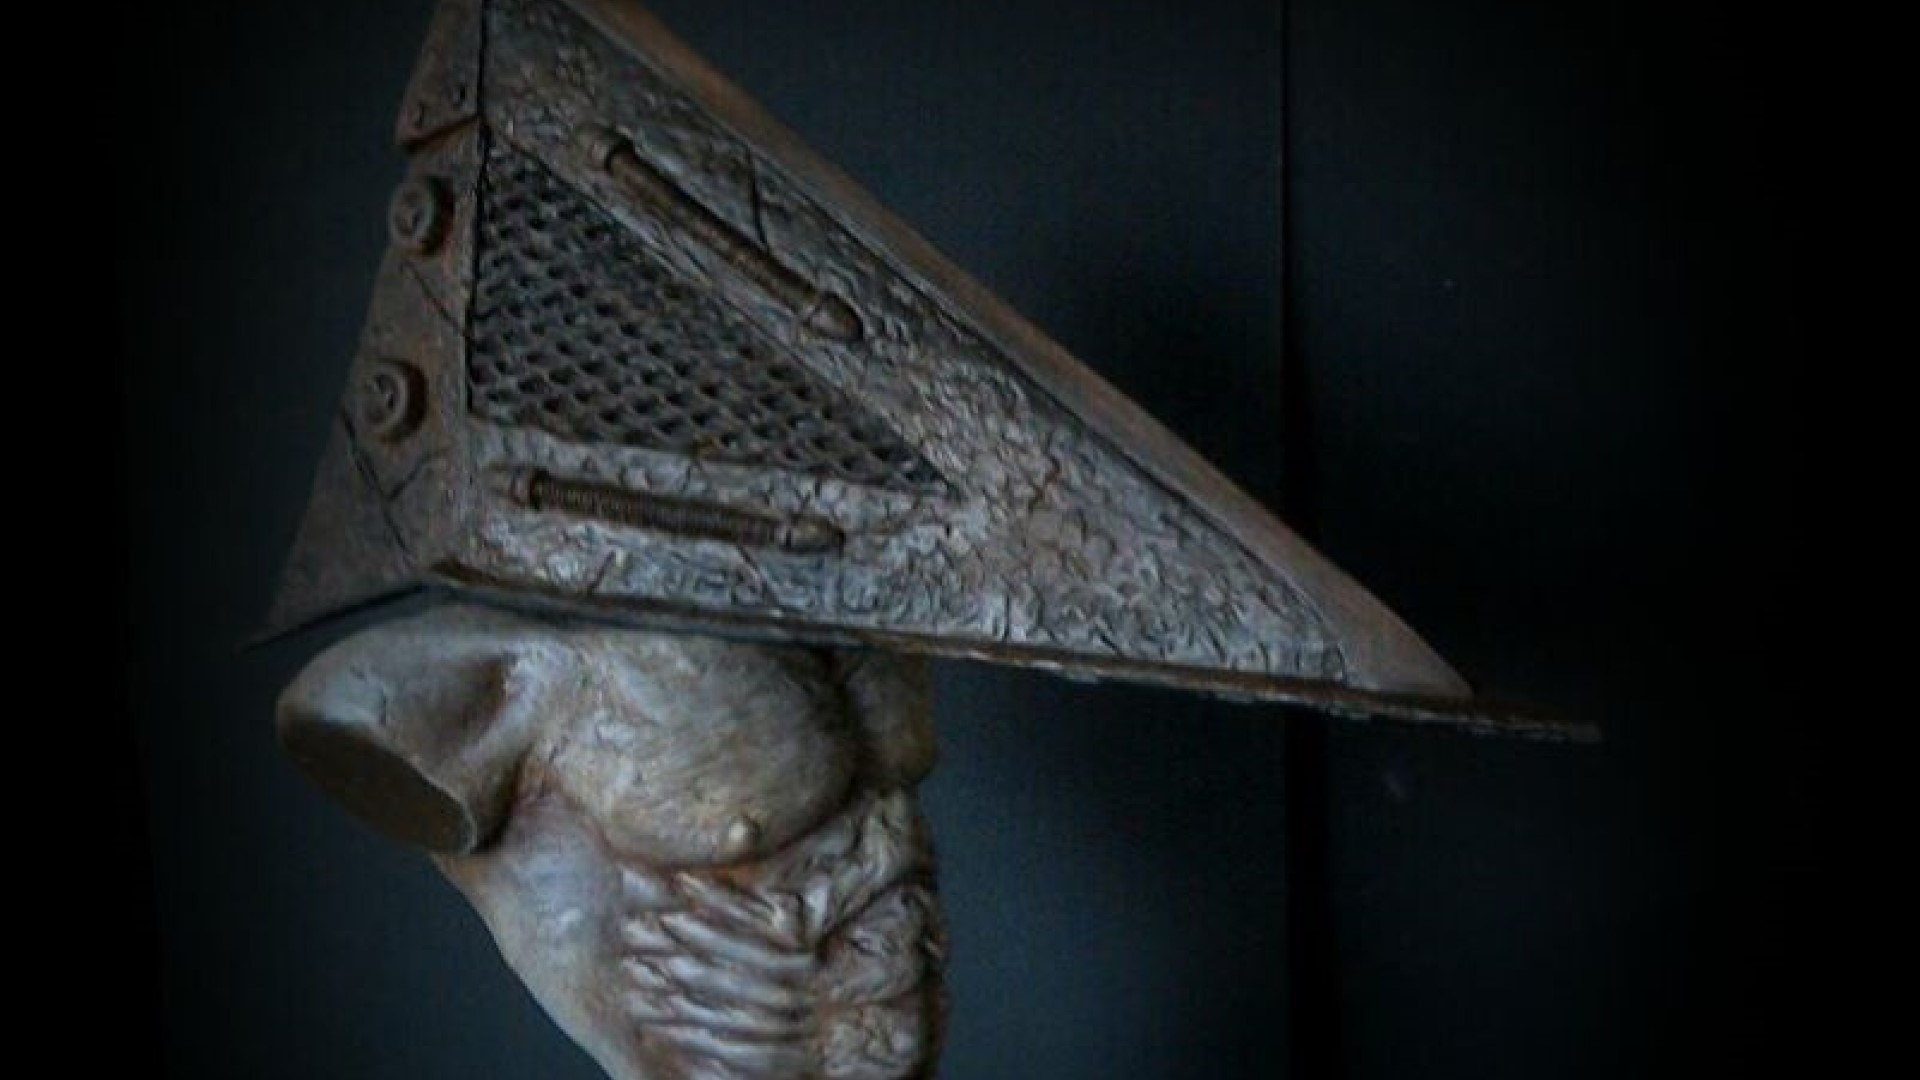 pyramid head - THIS CUSTOM PYRAMID HEAD SCULPTURE IS JUST BEGGING FOR MY MONEY